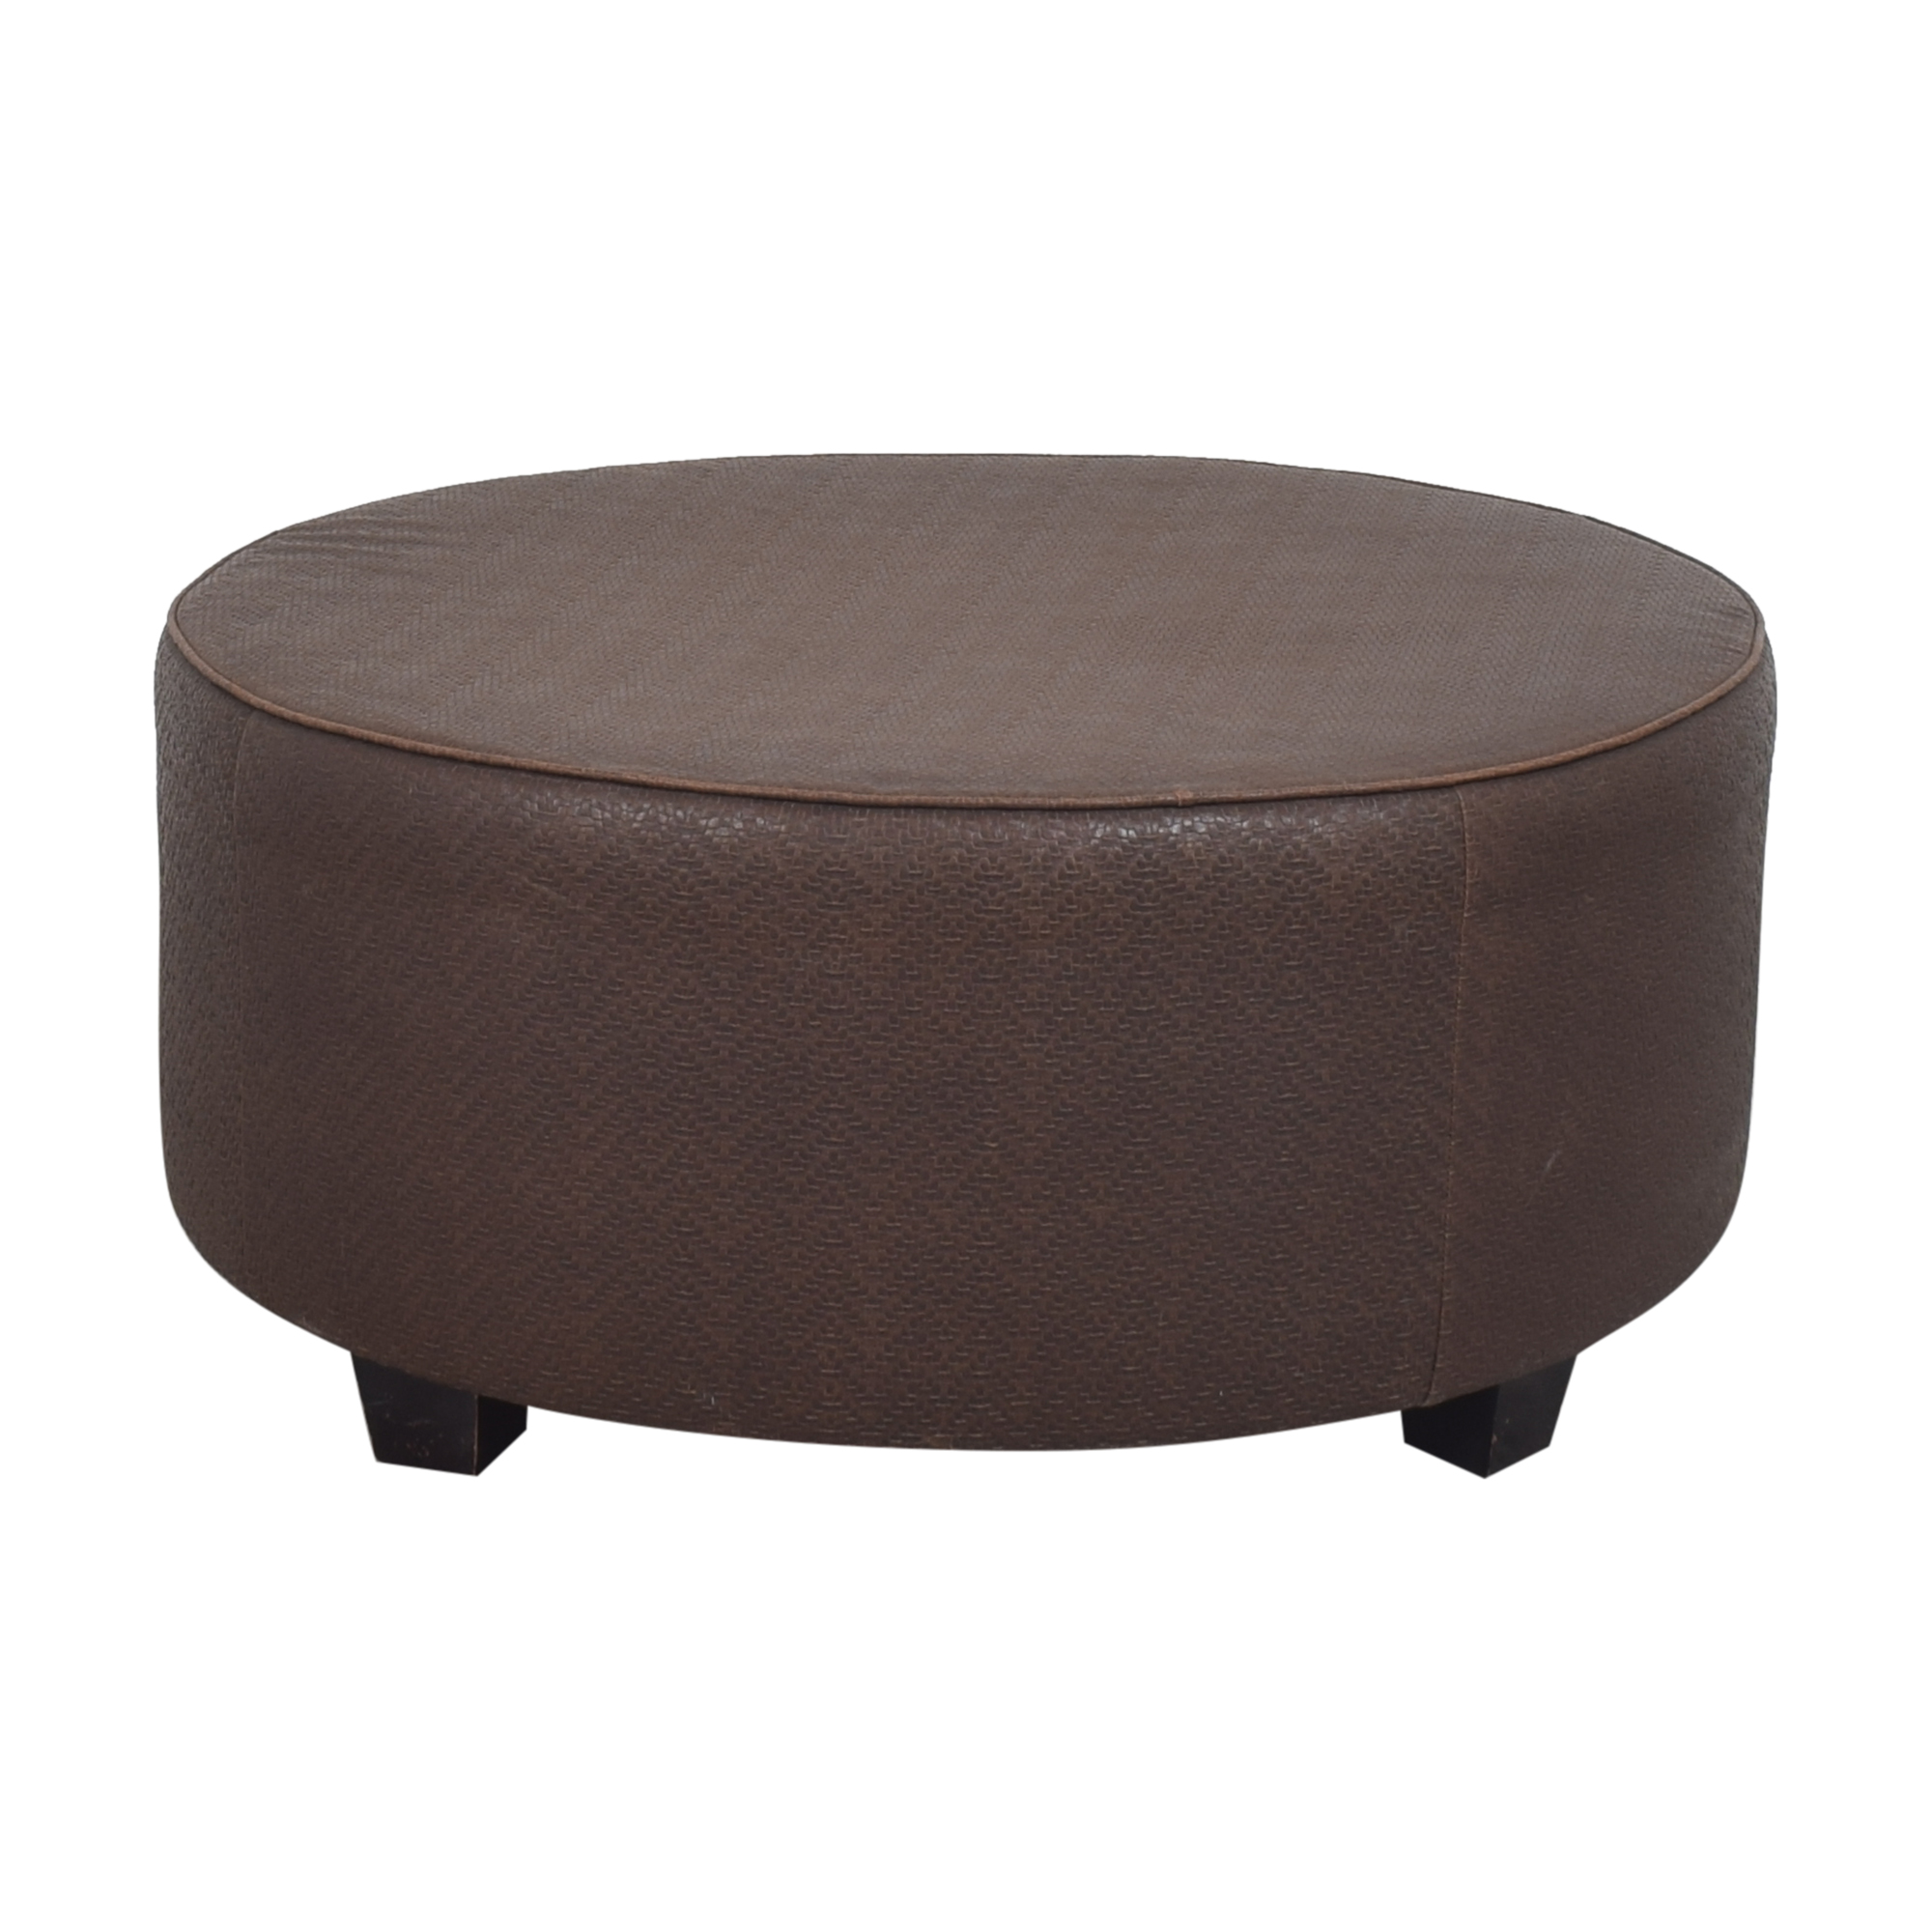 Bloomingdale's Bloomingdale's Round Ottoman coupon